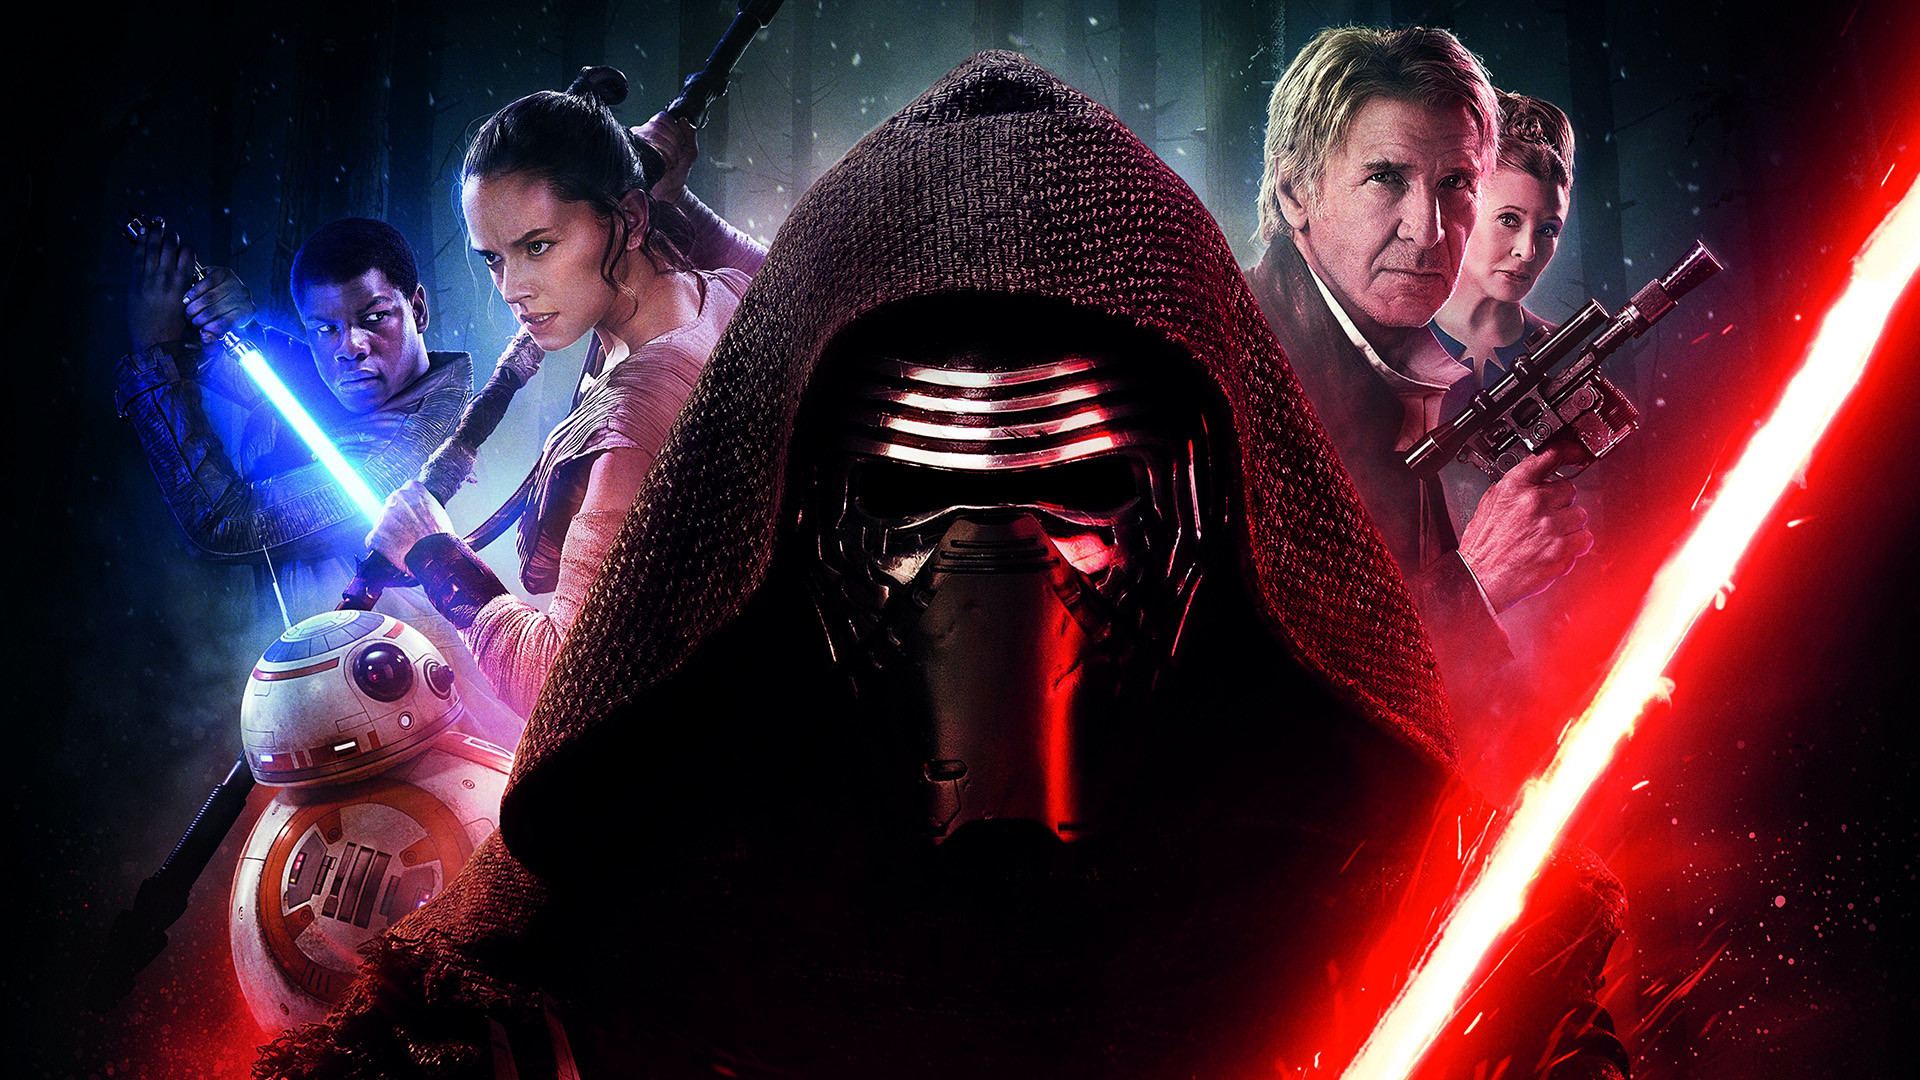 Movie – Star Wars Episode VII: The Force Awakens Star Wars Harrison Ford  Carrie Fisher